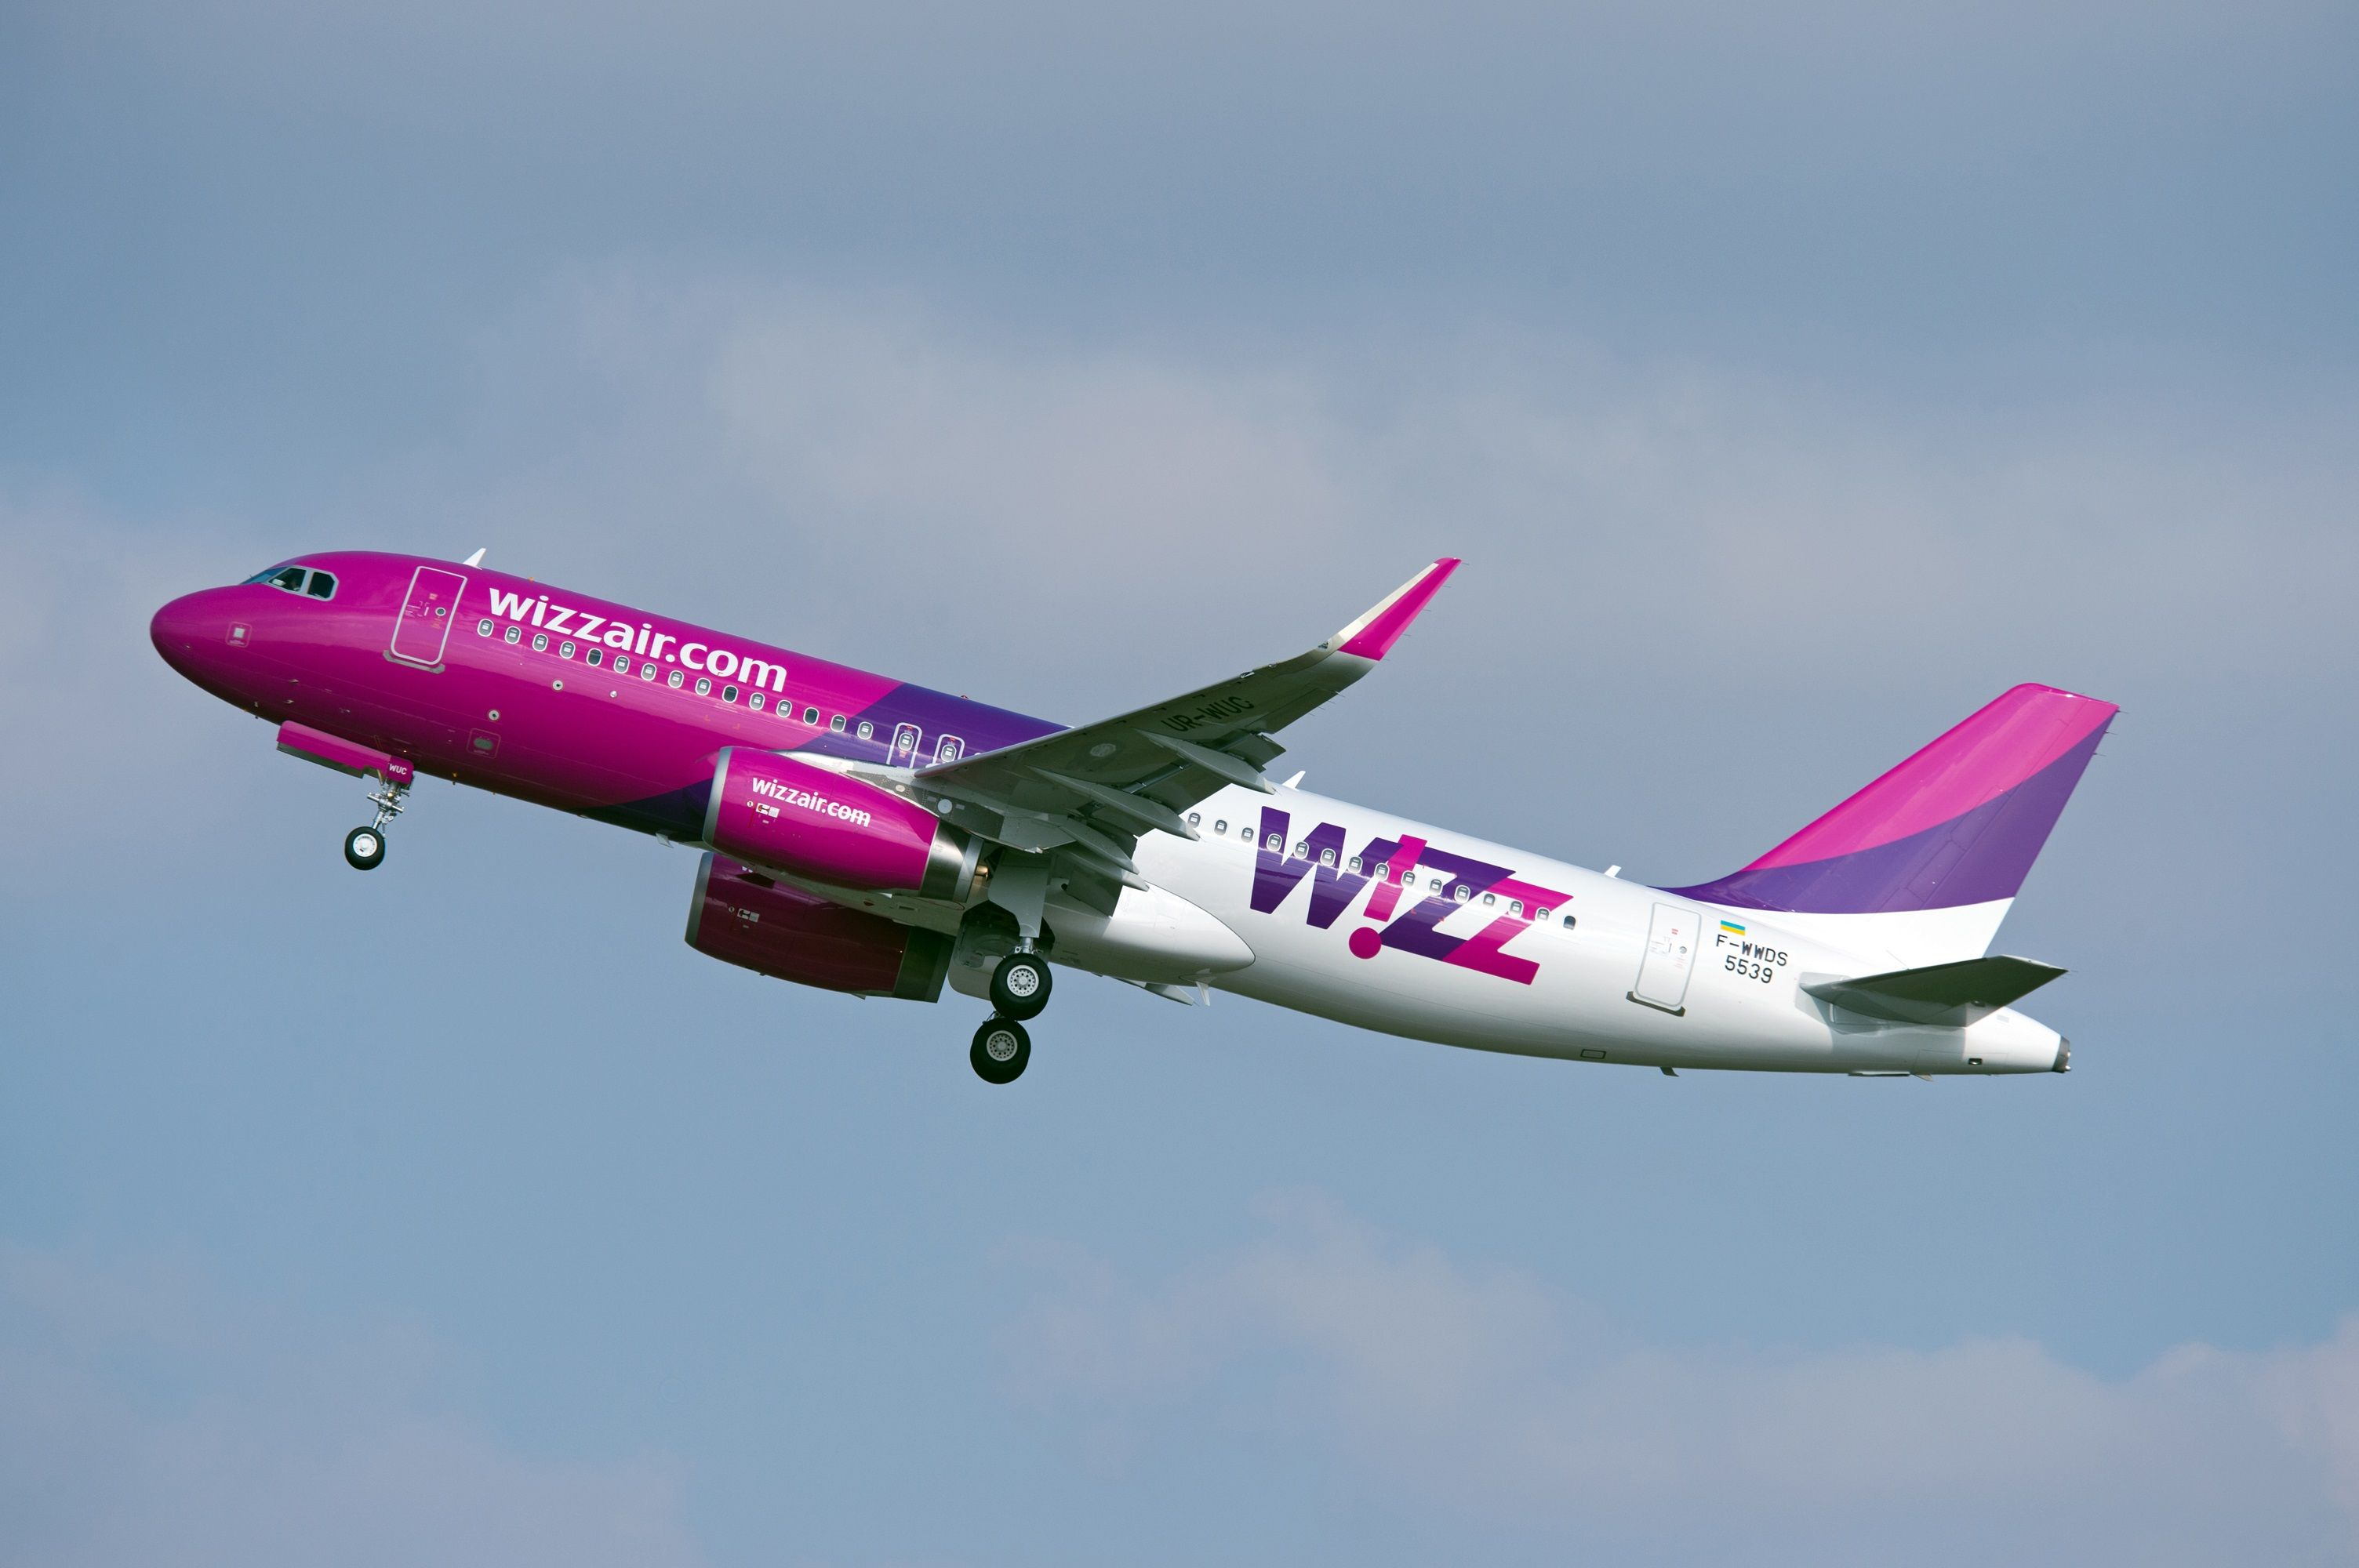 Wizz Air Ukraine takes delivery of its first Sharklet